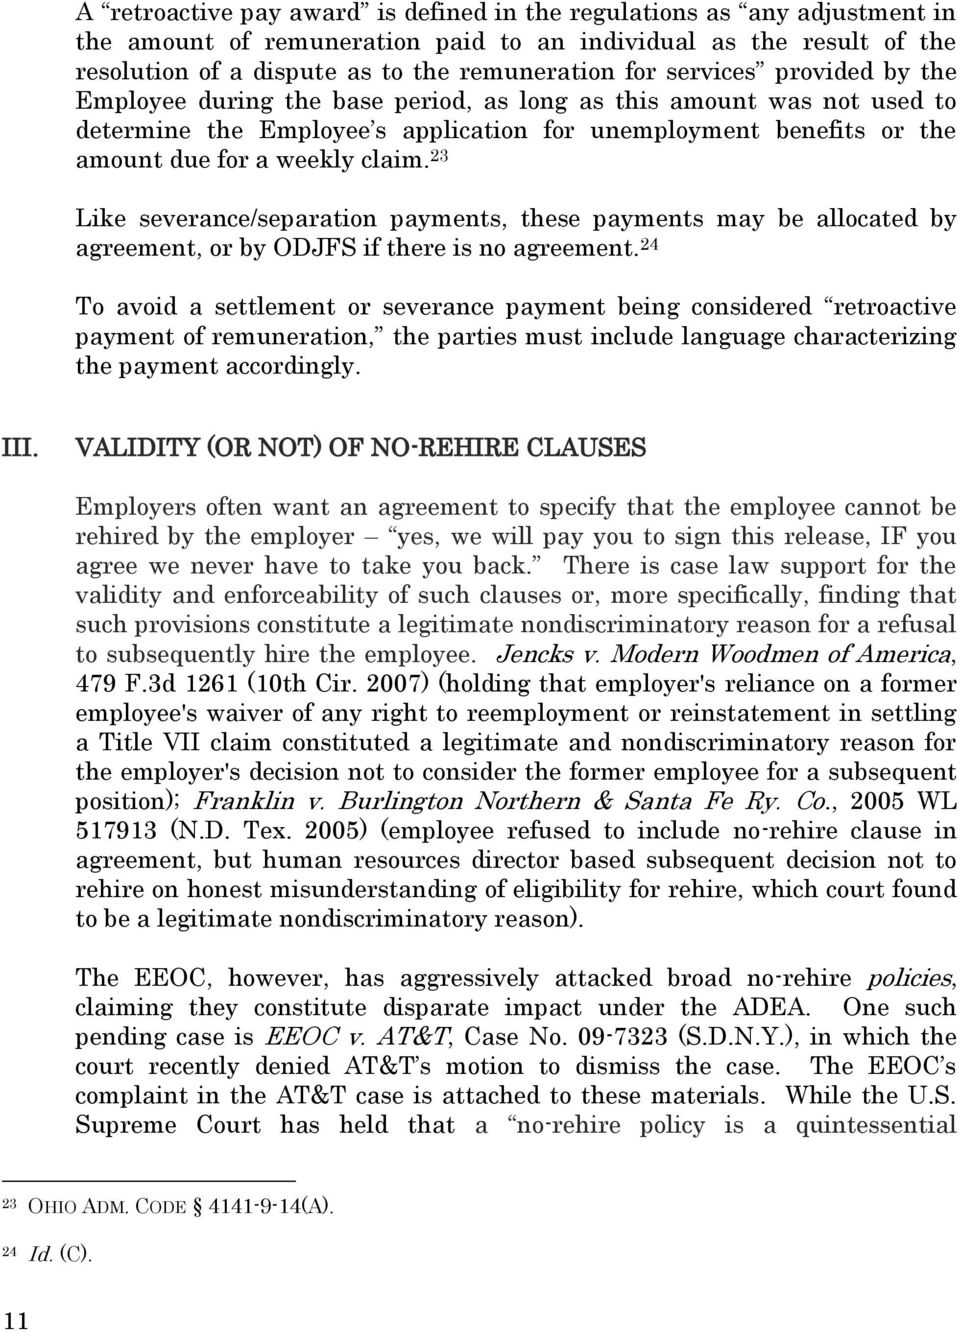 23 Like severance/separation payments, these payments may be allocated by agreement, or by ODJFS if there is no agreement.